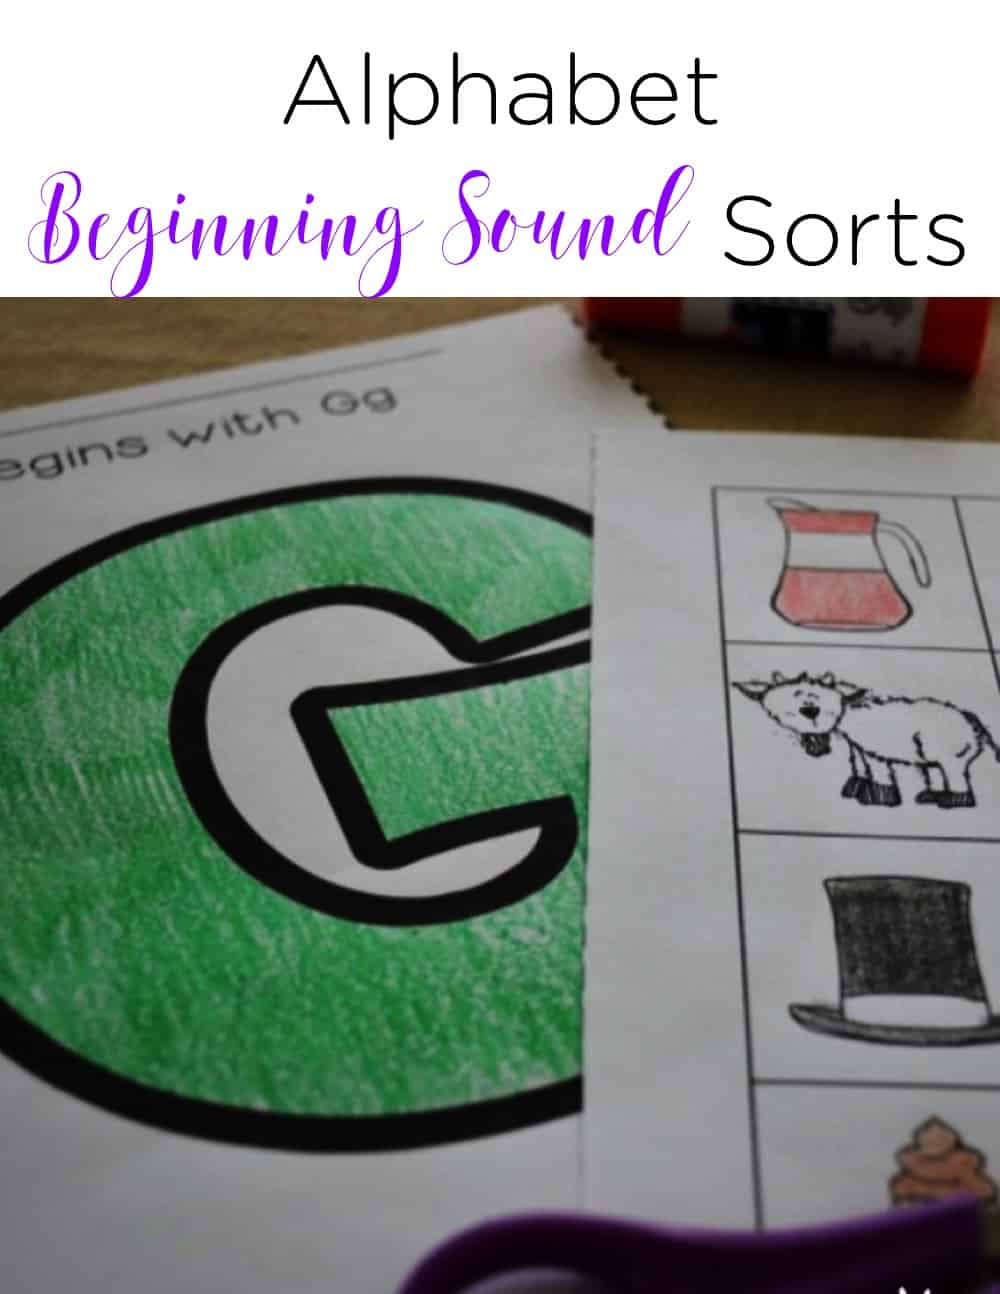 Beginning sound activities that are engaging, hands on, and help students practice scissors skills are perfect for the beginning of the year! I love that they fit in a phonics interactive notebook, too! #beginningsounds #literacycenters #balancedliteracy #kindergarten #firstgrade #homeschool